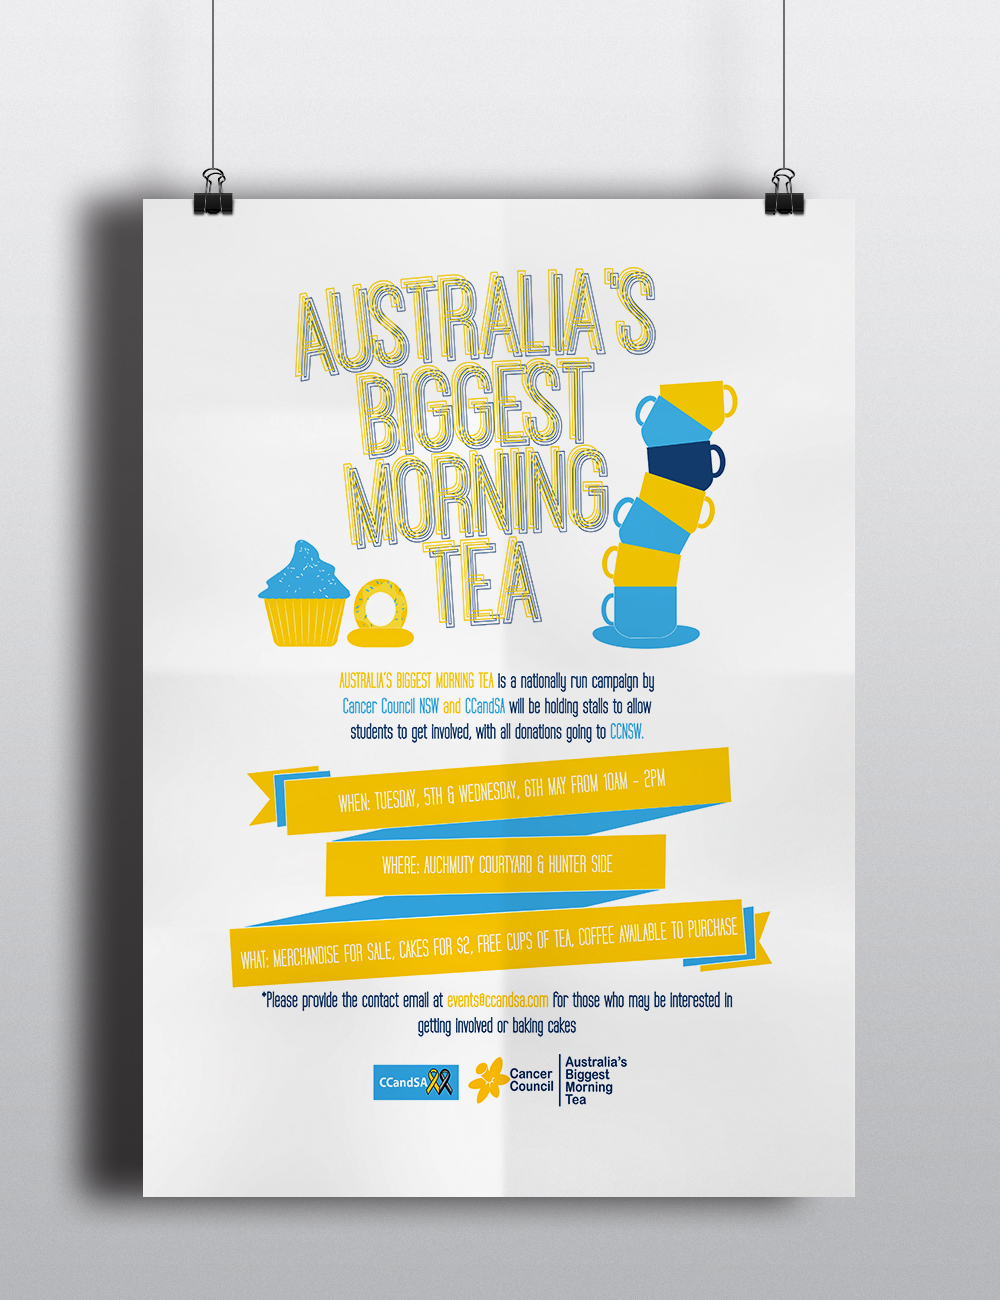 Poster for the Cancer Council Student Alliance at the University of Newcastle